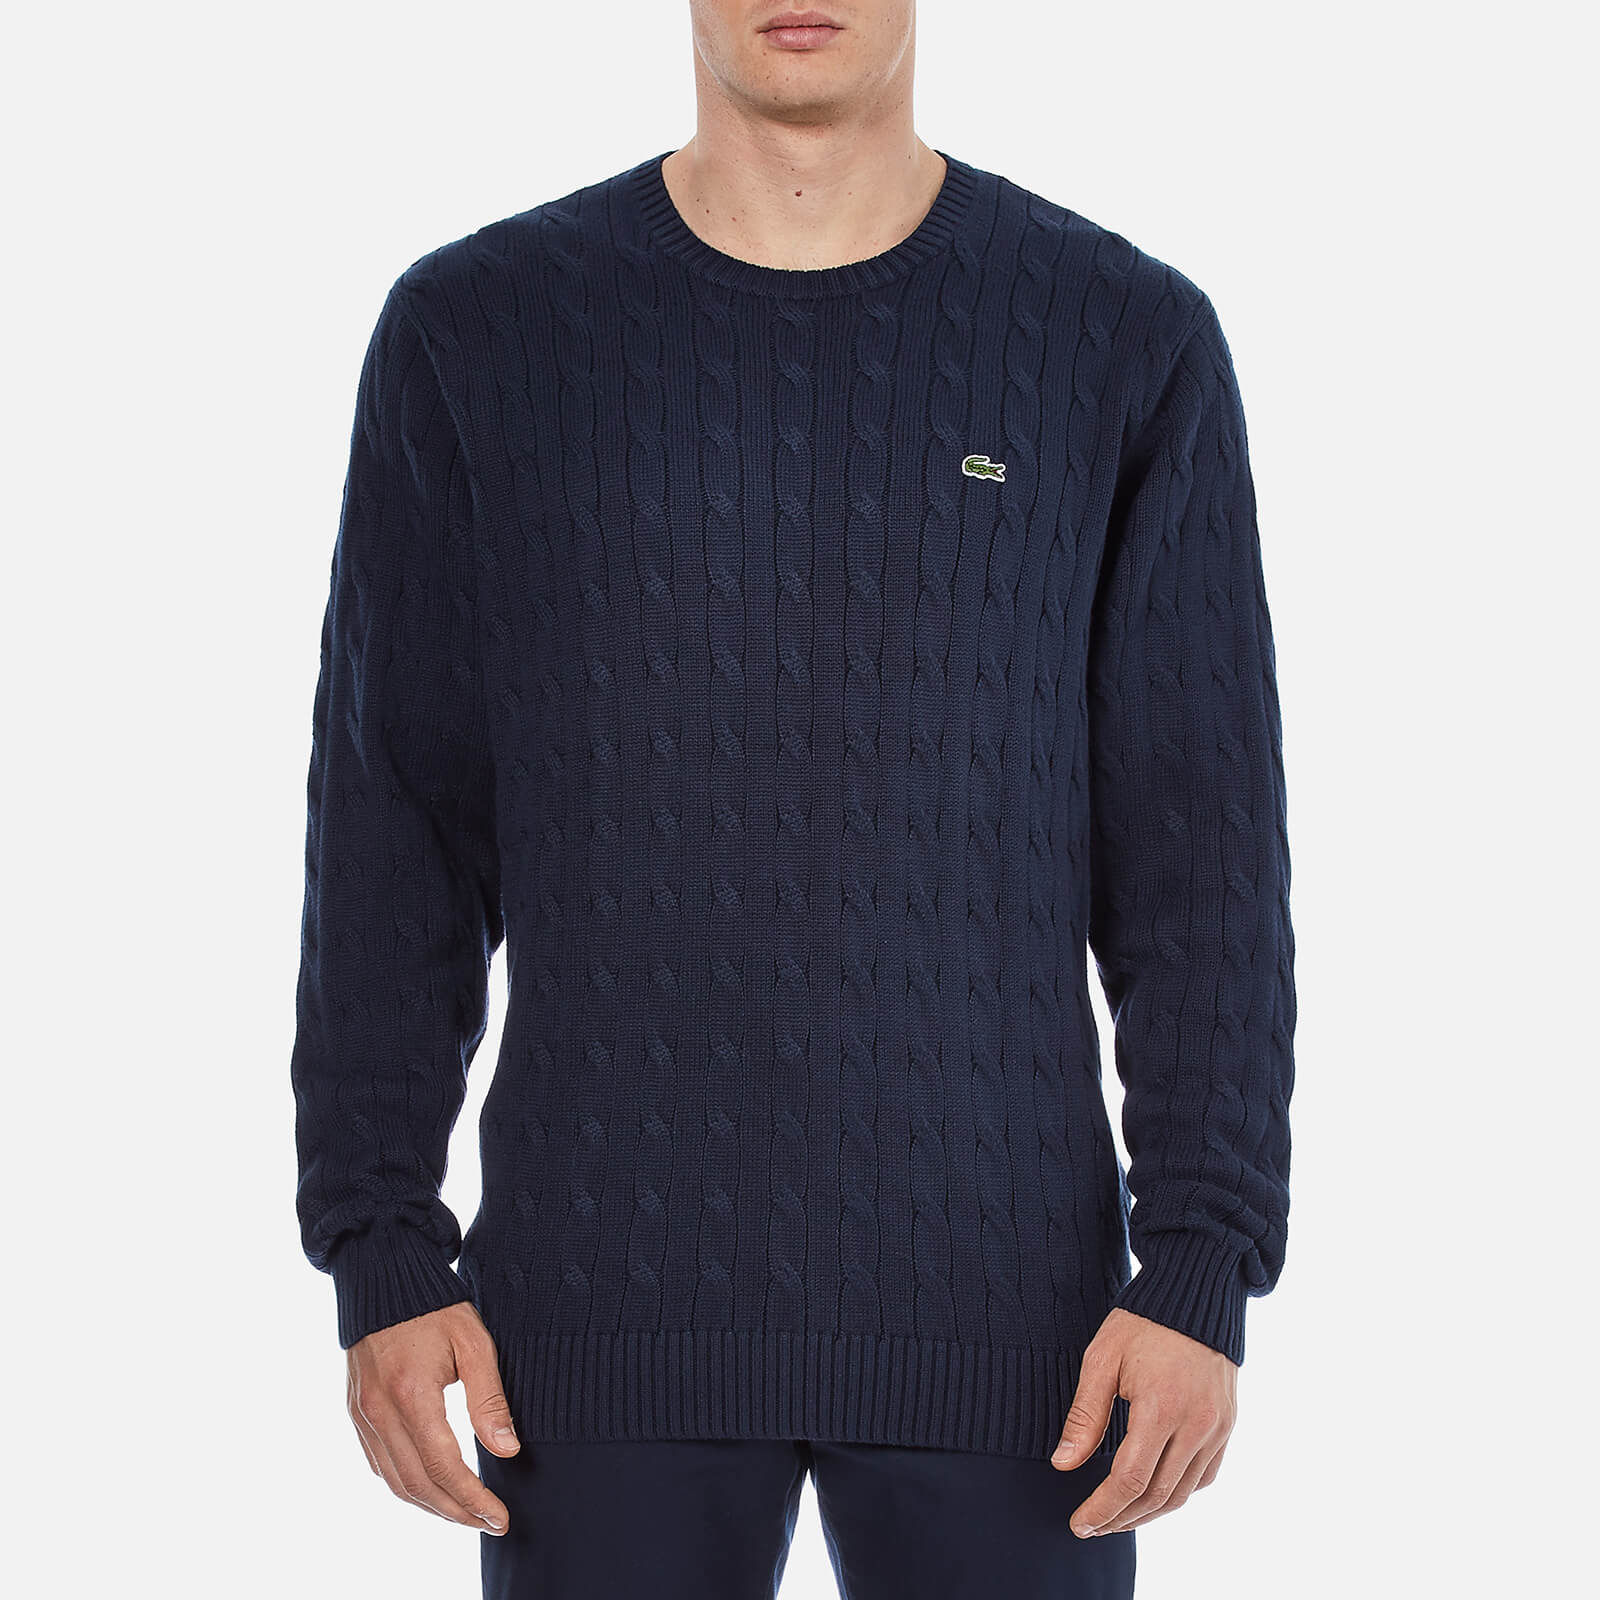 f75751c1c00 Lacoste Men's Cable Knitted Sweater - Navy